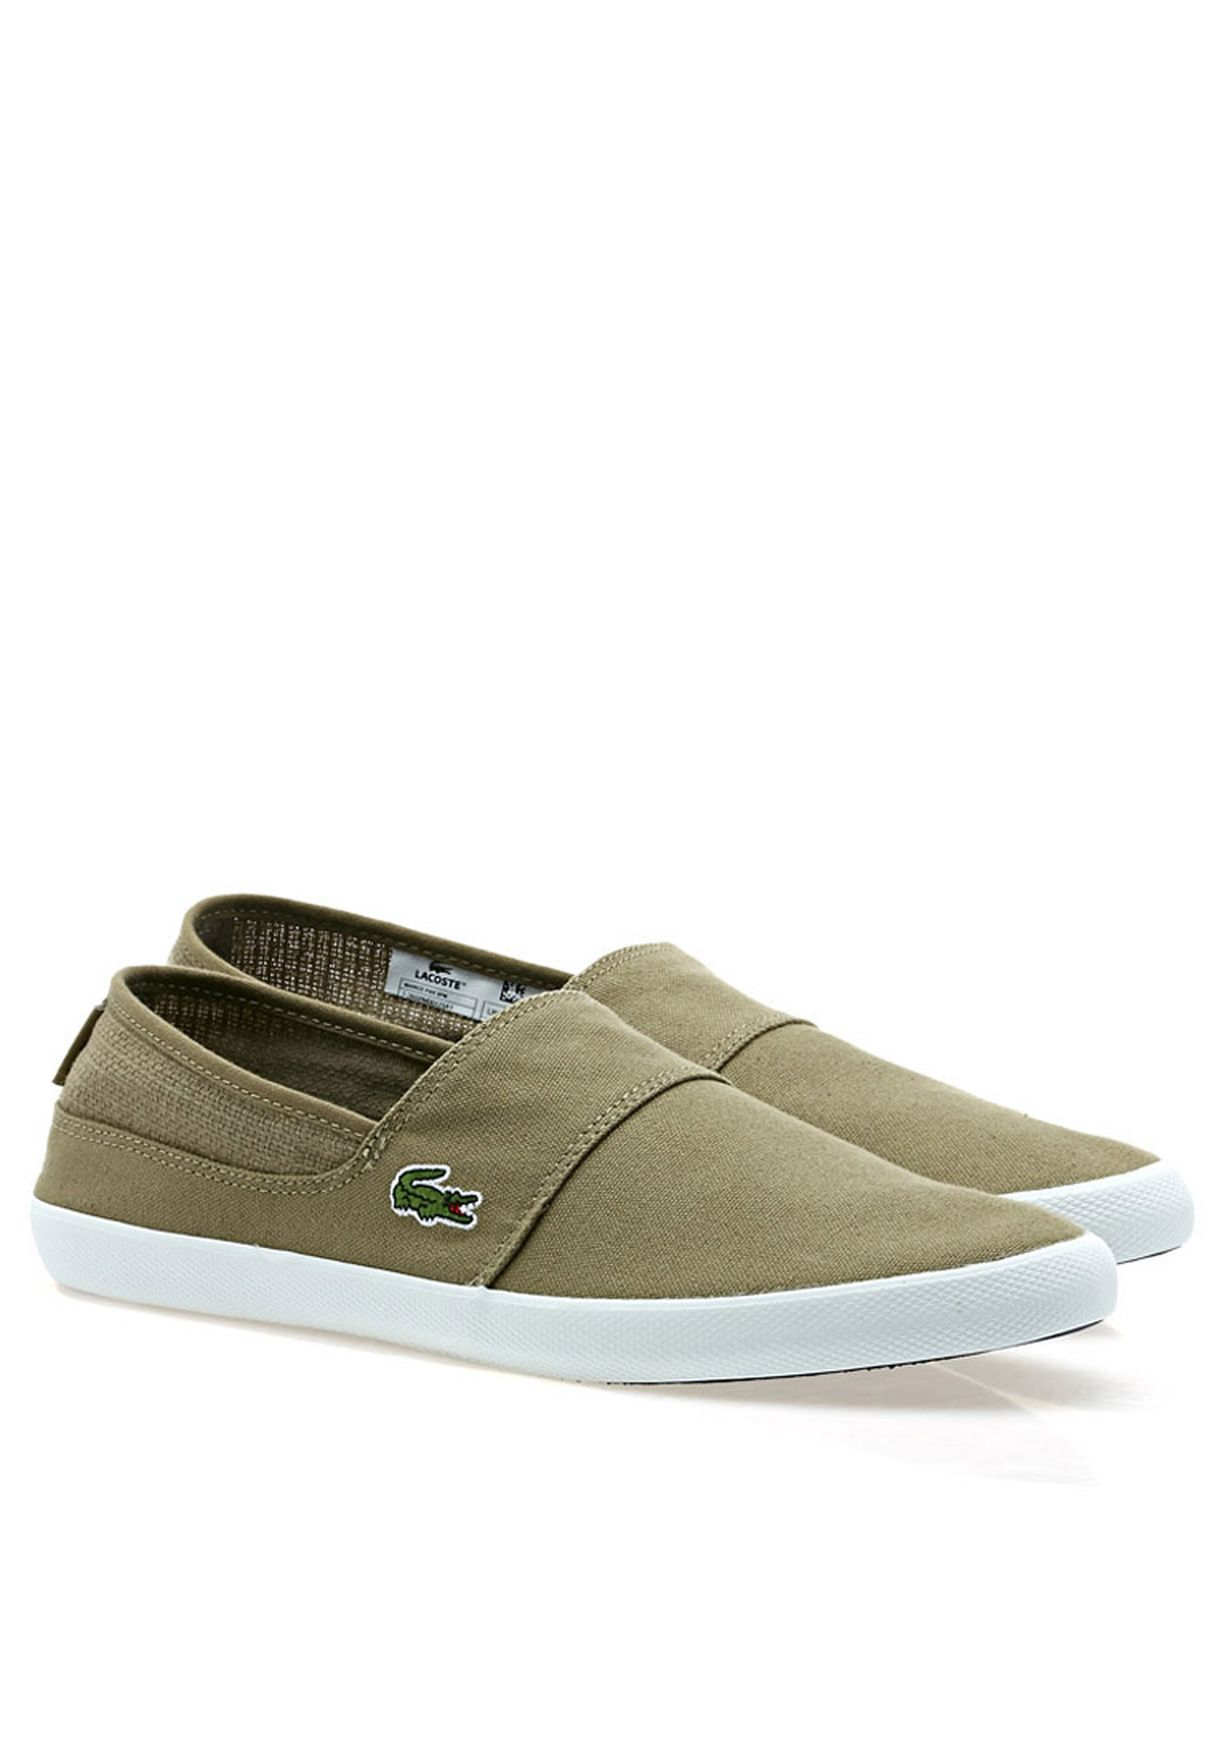 a808eab6f4a6e Shop Lacoste neutrals MARICE PARCasual Slip ons 26SPM0017-5A1 for Men in  Oman - LA014SH65BQO